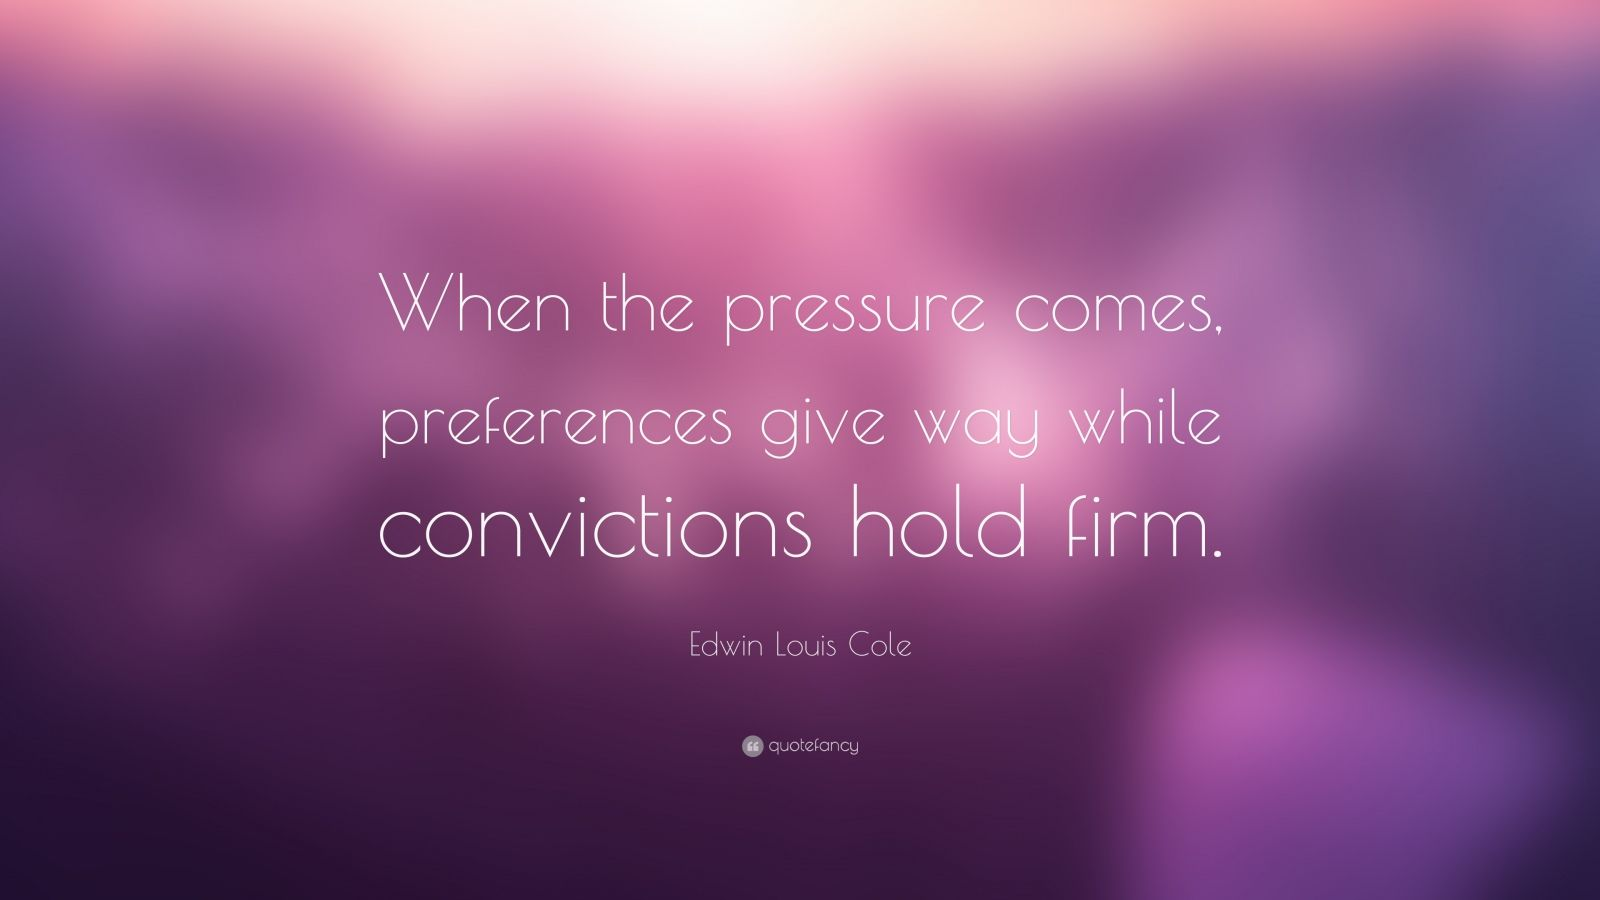 """Edwin Louis Cole Quote: """"When the pressure comes, preferences give way while convictions hold firm."""""""